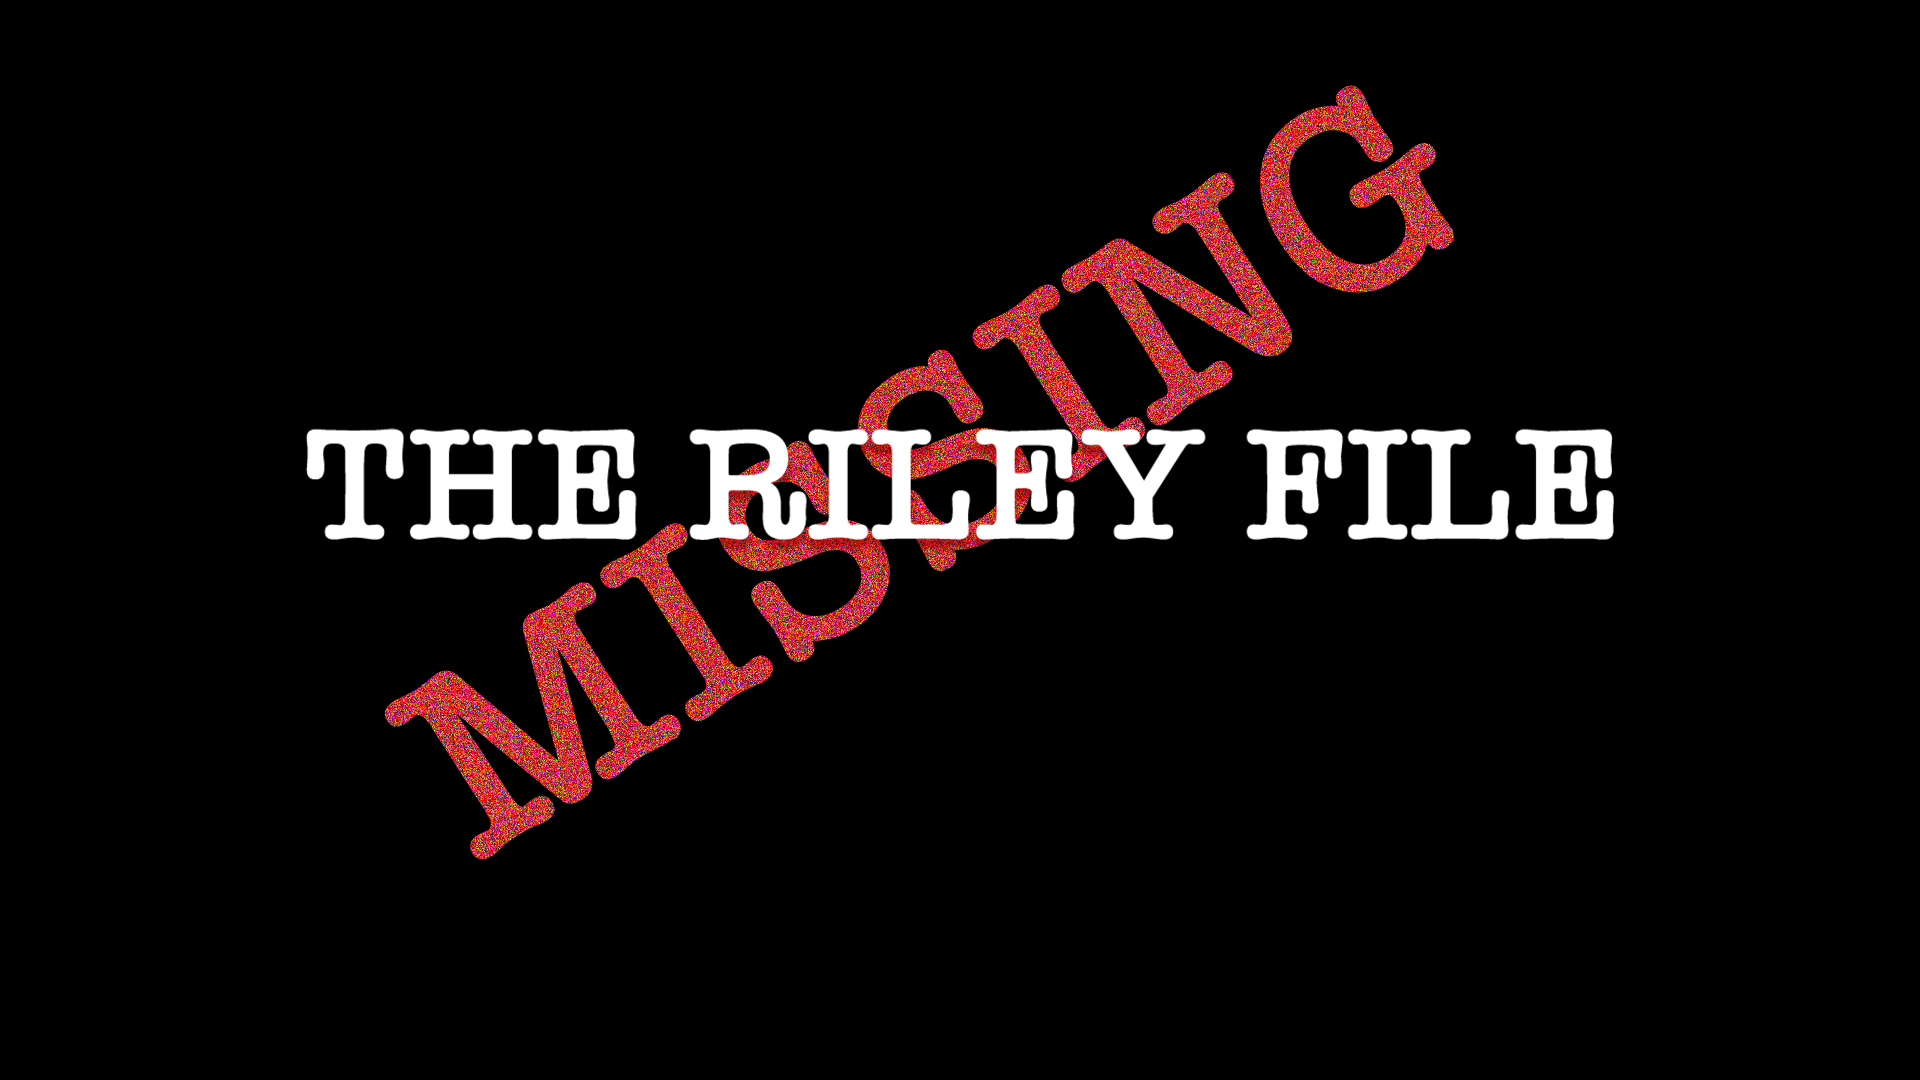 THE RILEY FILE directed by Travis Brown